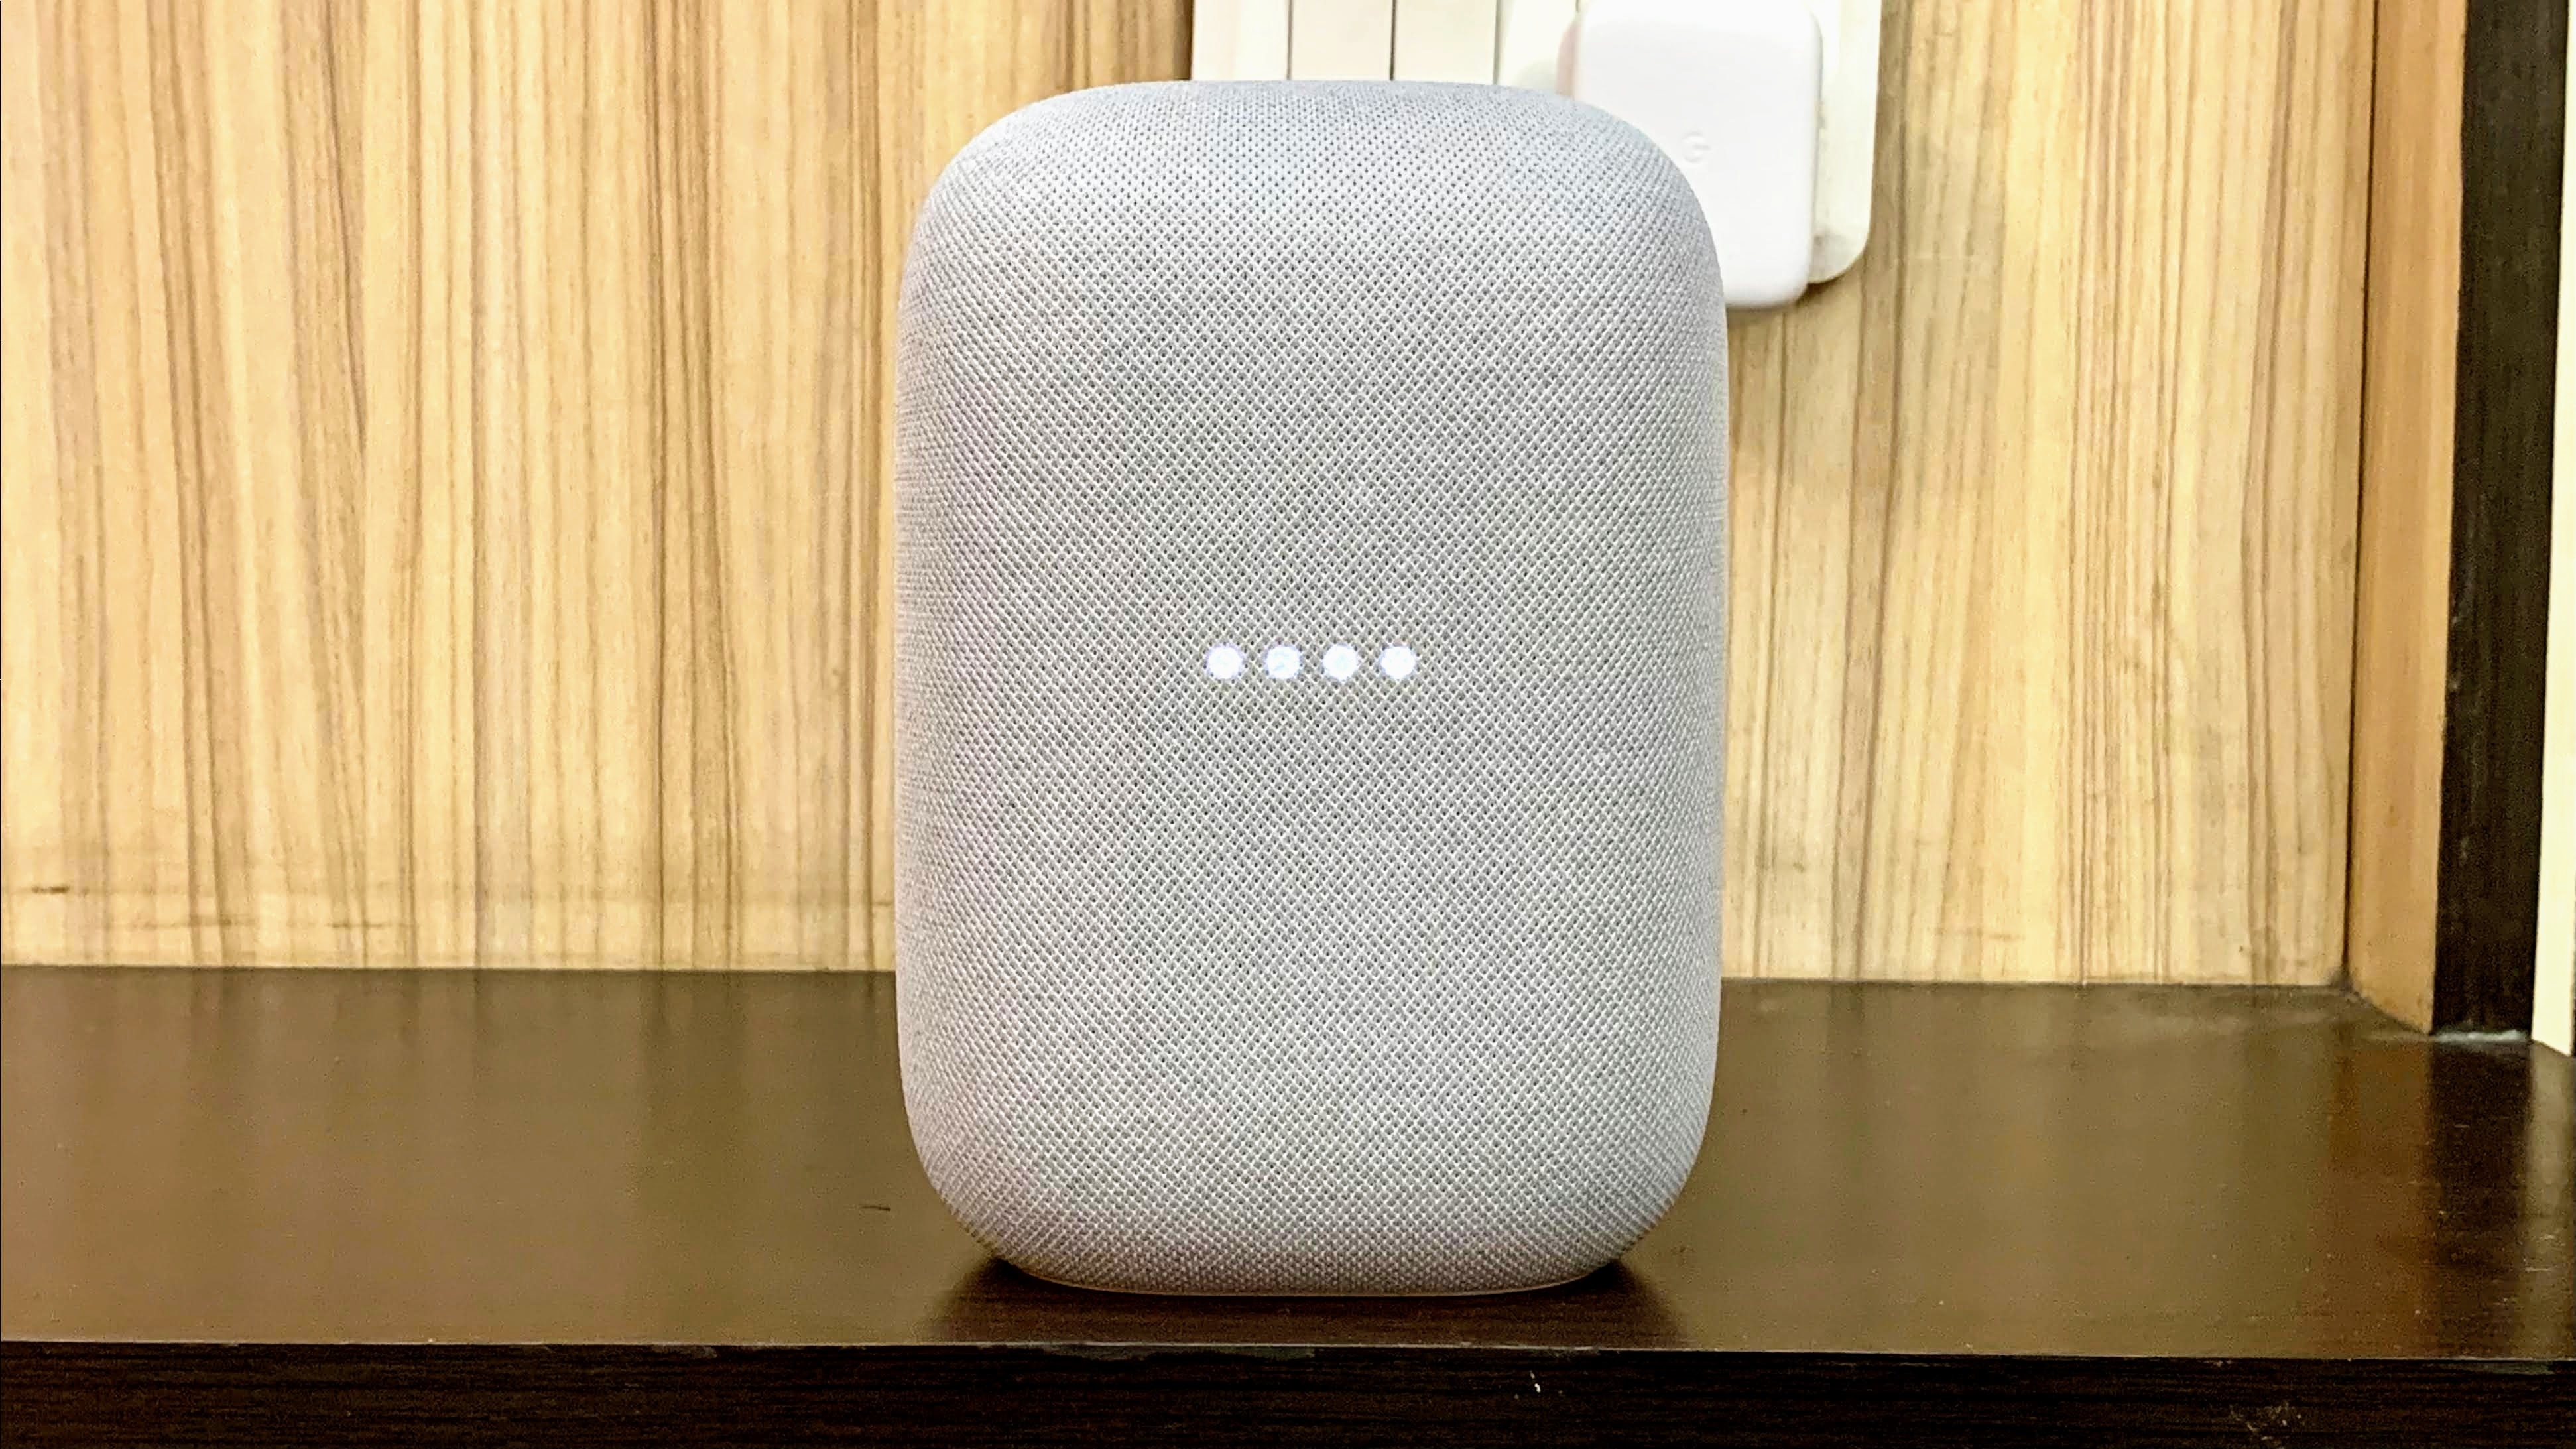 It is 75% louder and it has 50% stronger bass than the original Google Home